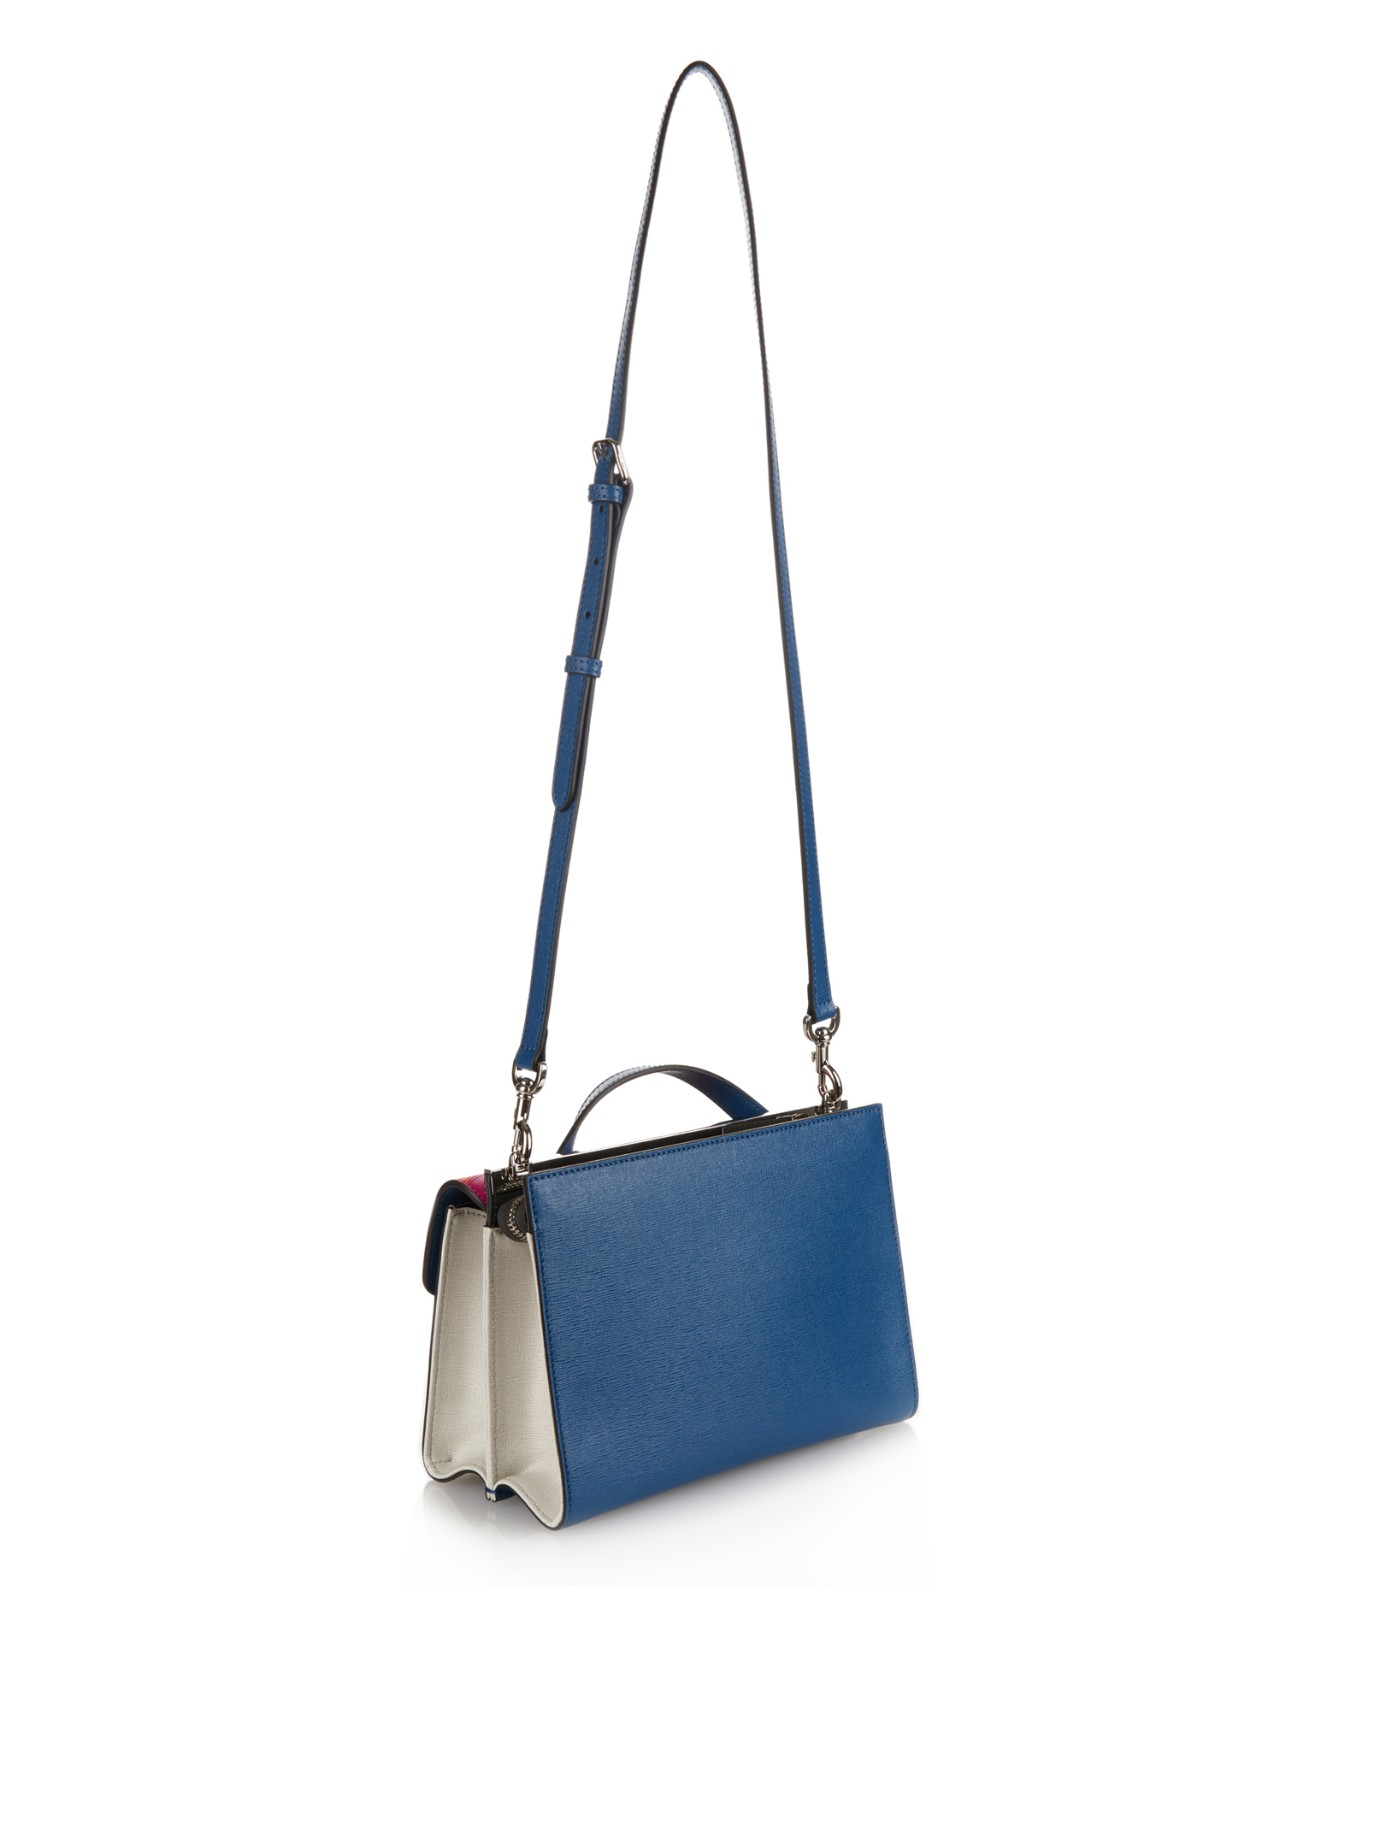 Lyst - Fendi Demi Jour Monster-Eyes Leather Cross-Body Bag in Blue 5613e7656ae0c